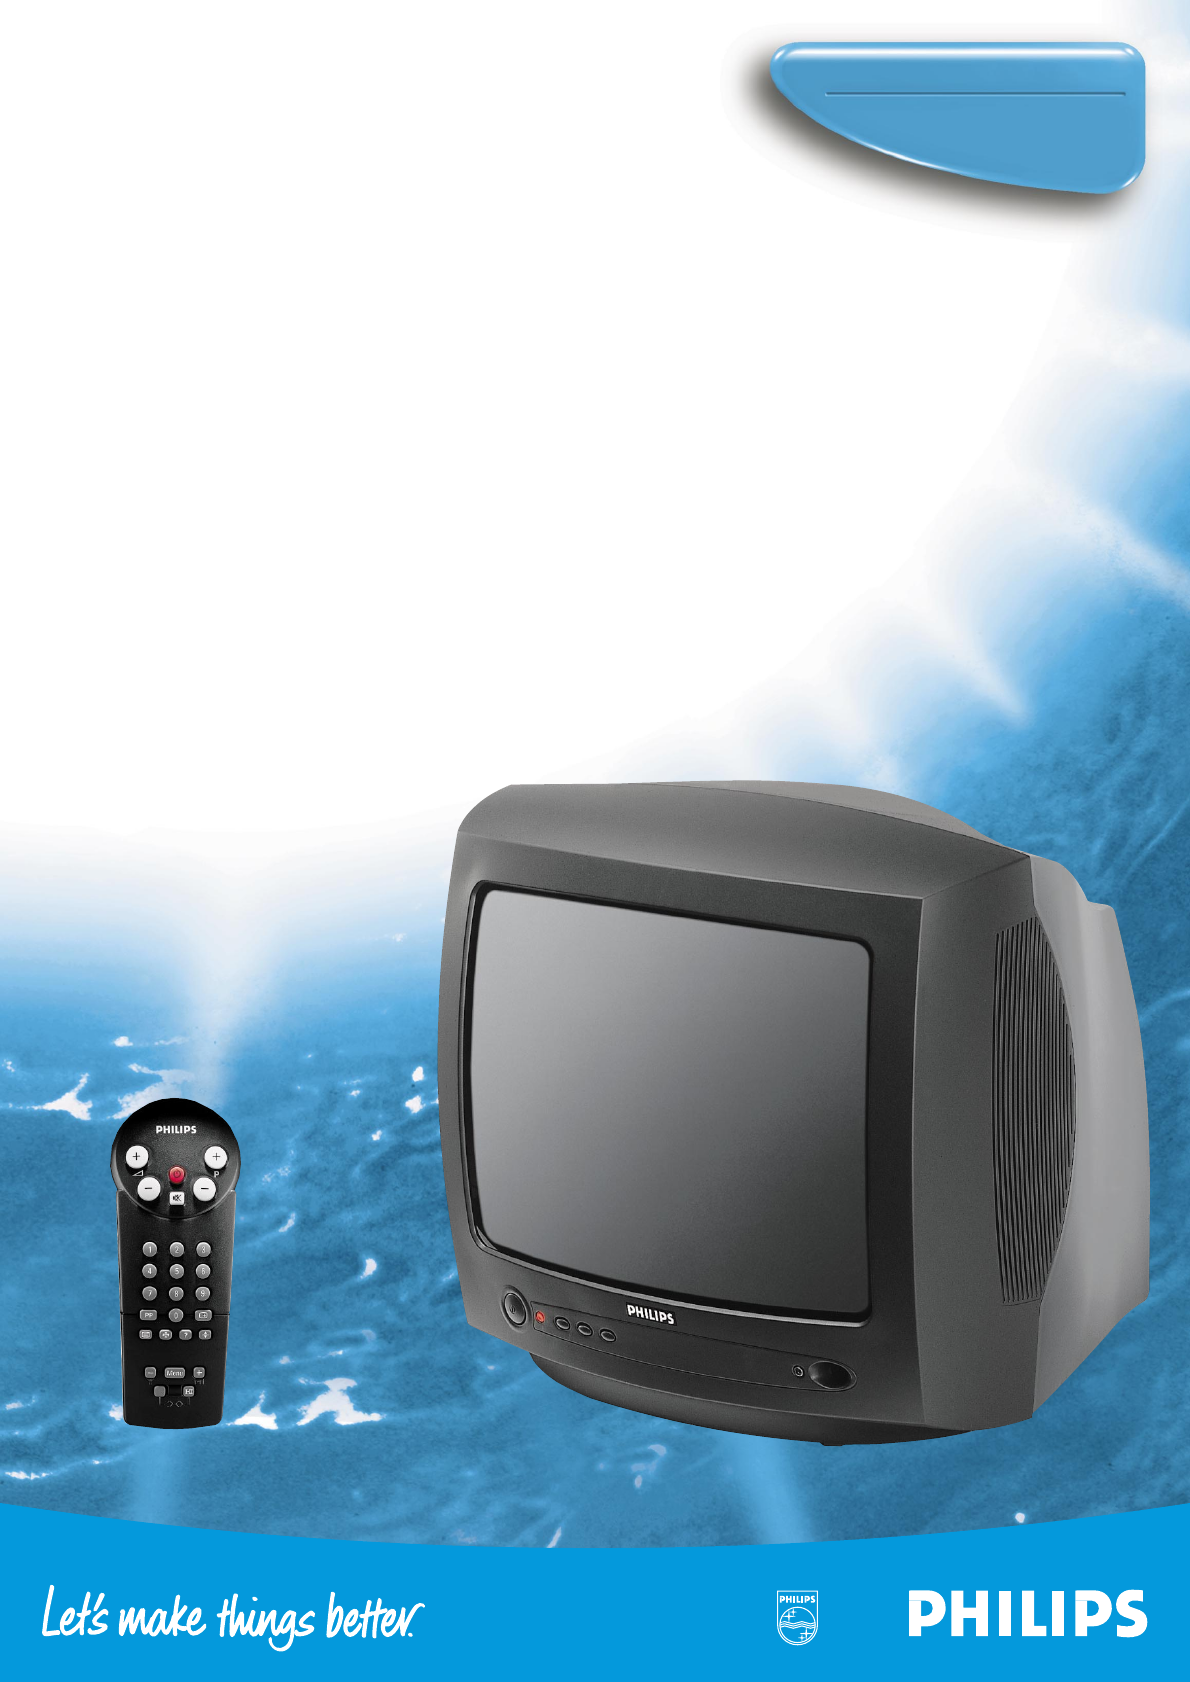 philips crt television 14pt1363 user guide manualsonline com rh tv manualsonline com Philips User Guides Philips User Guides